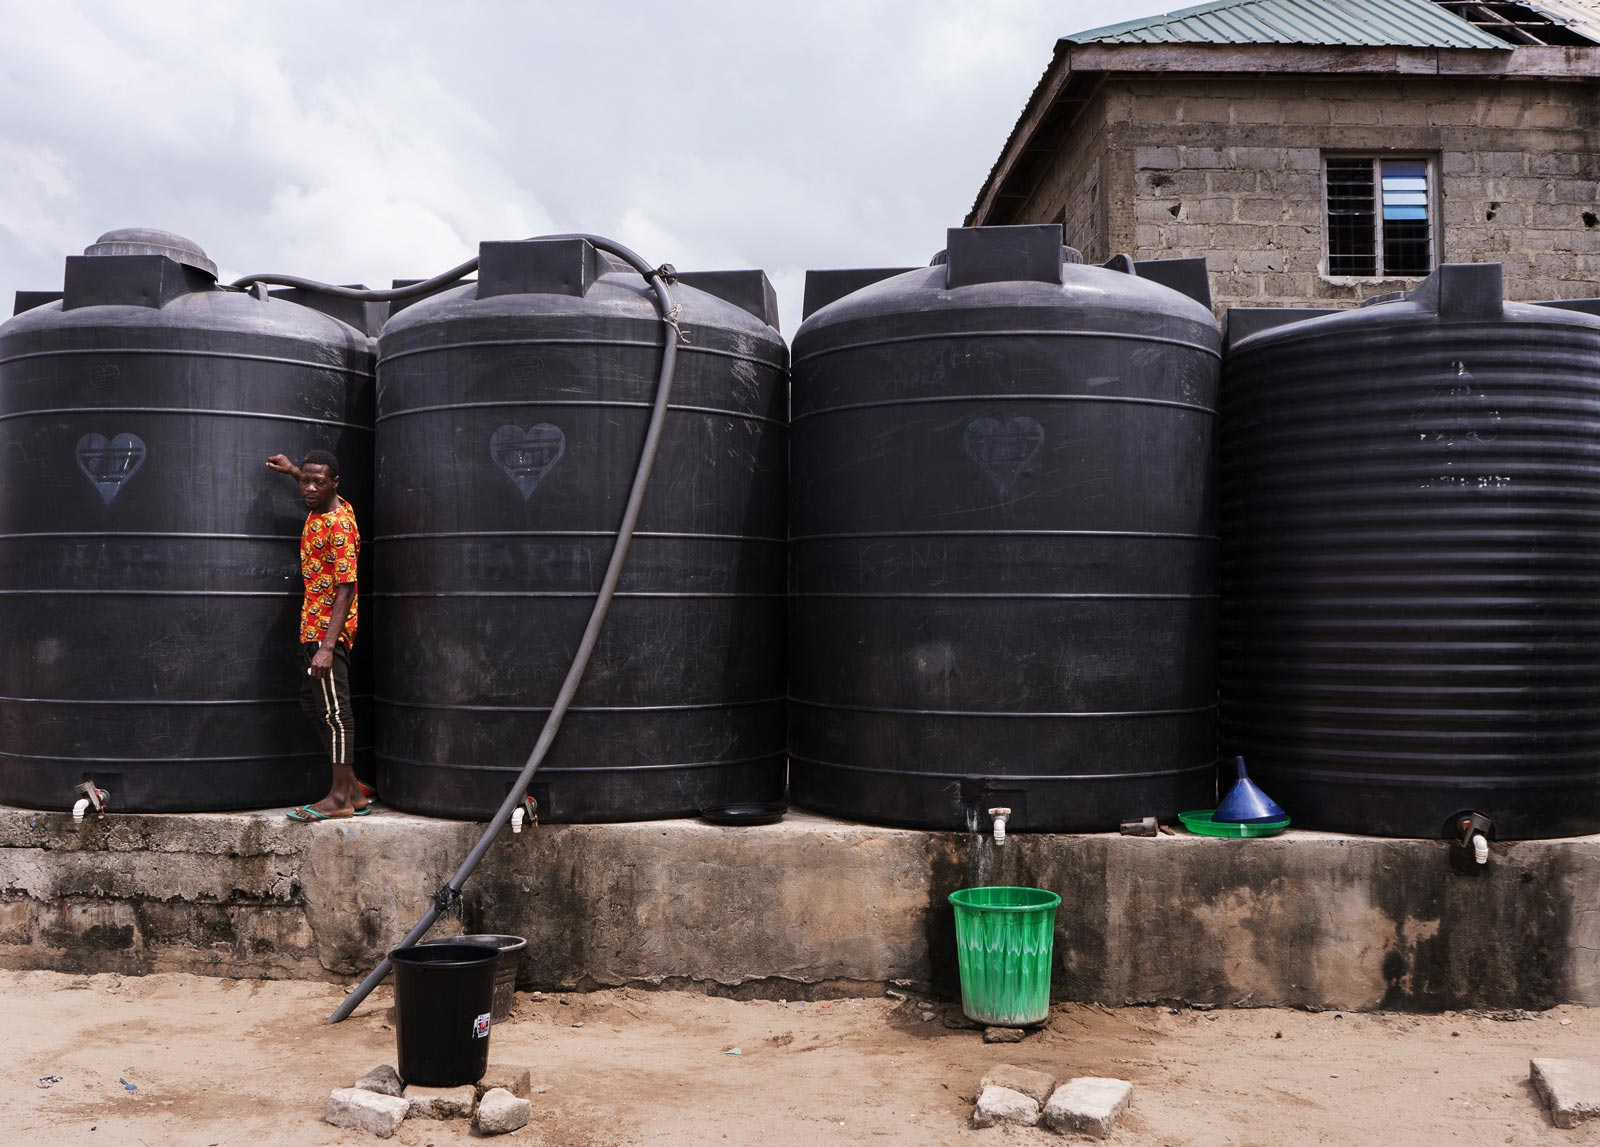 A young man standing in front of 4 large black water tanks that are nearly twice his height.